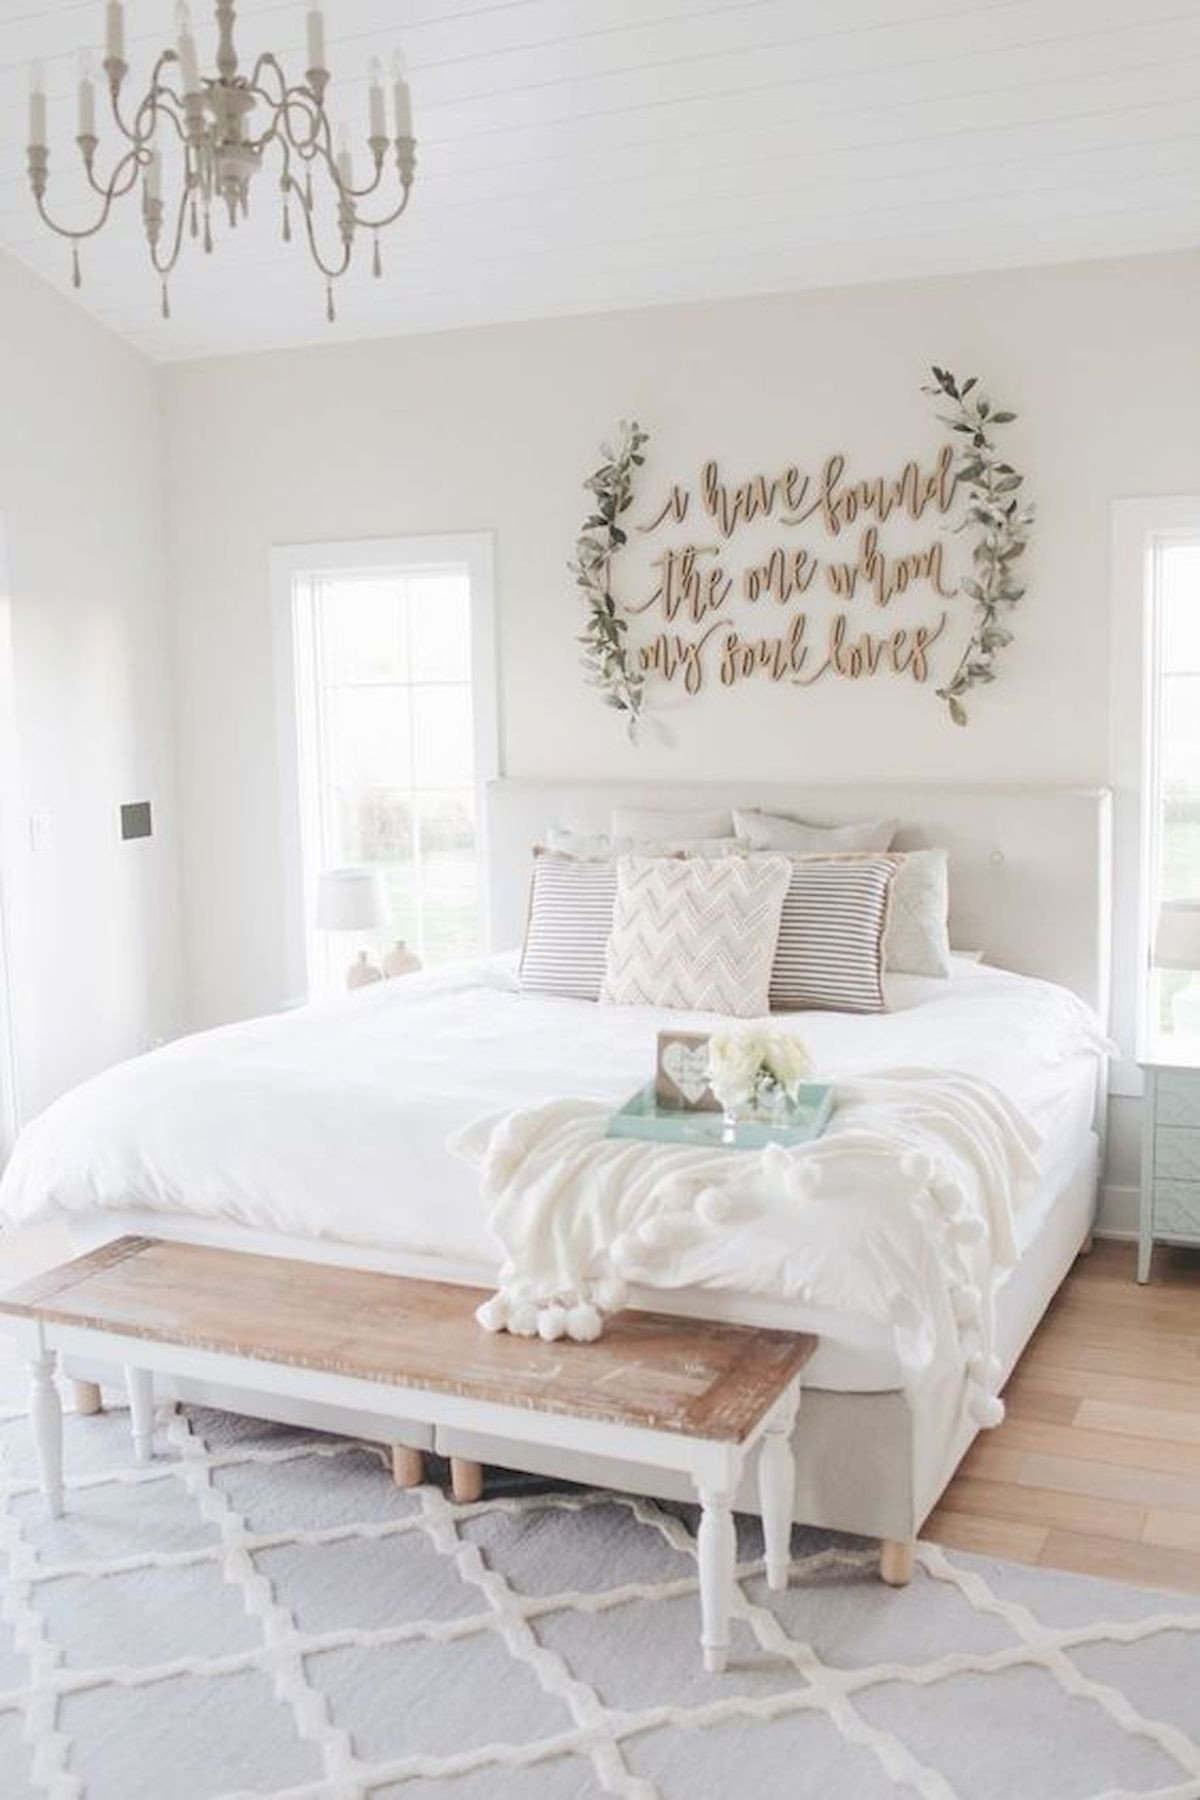 Wall Decor Ideas for Bedroom New 53 Best Farmhouse Wall Decor Ideas for Bedroom Ideaboz